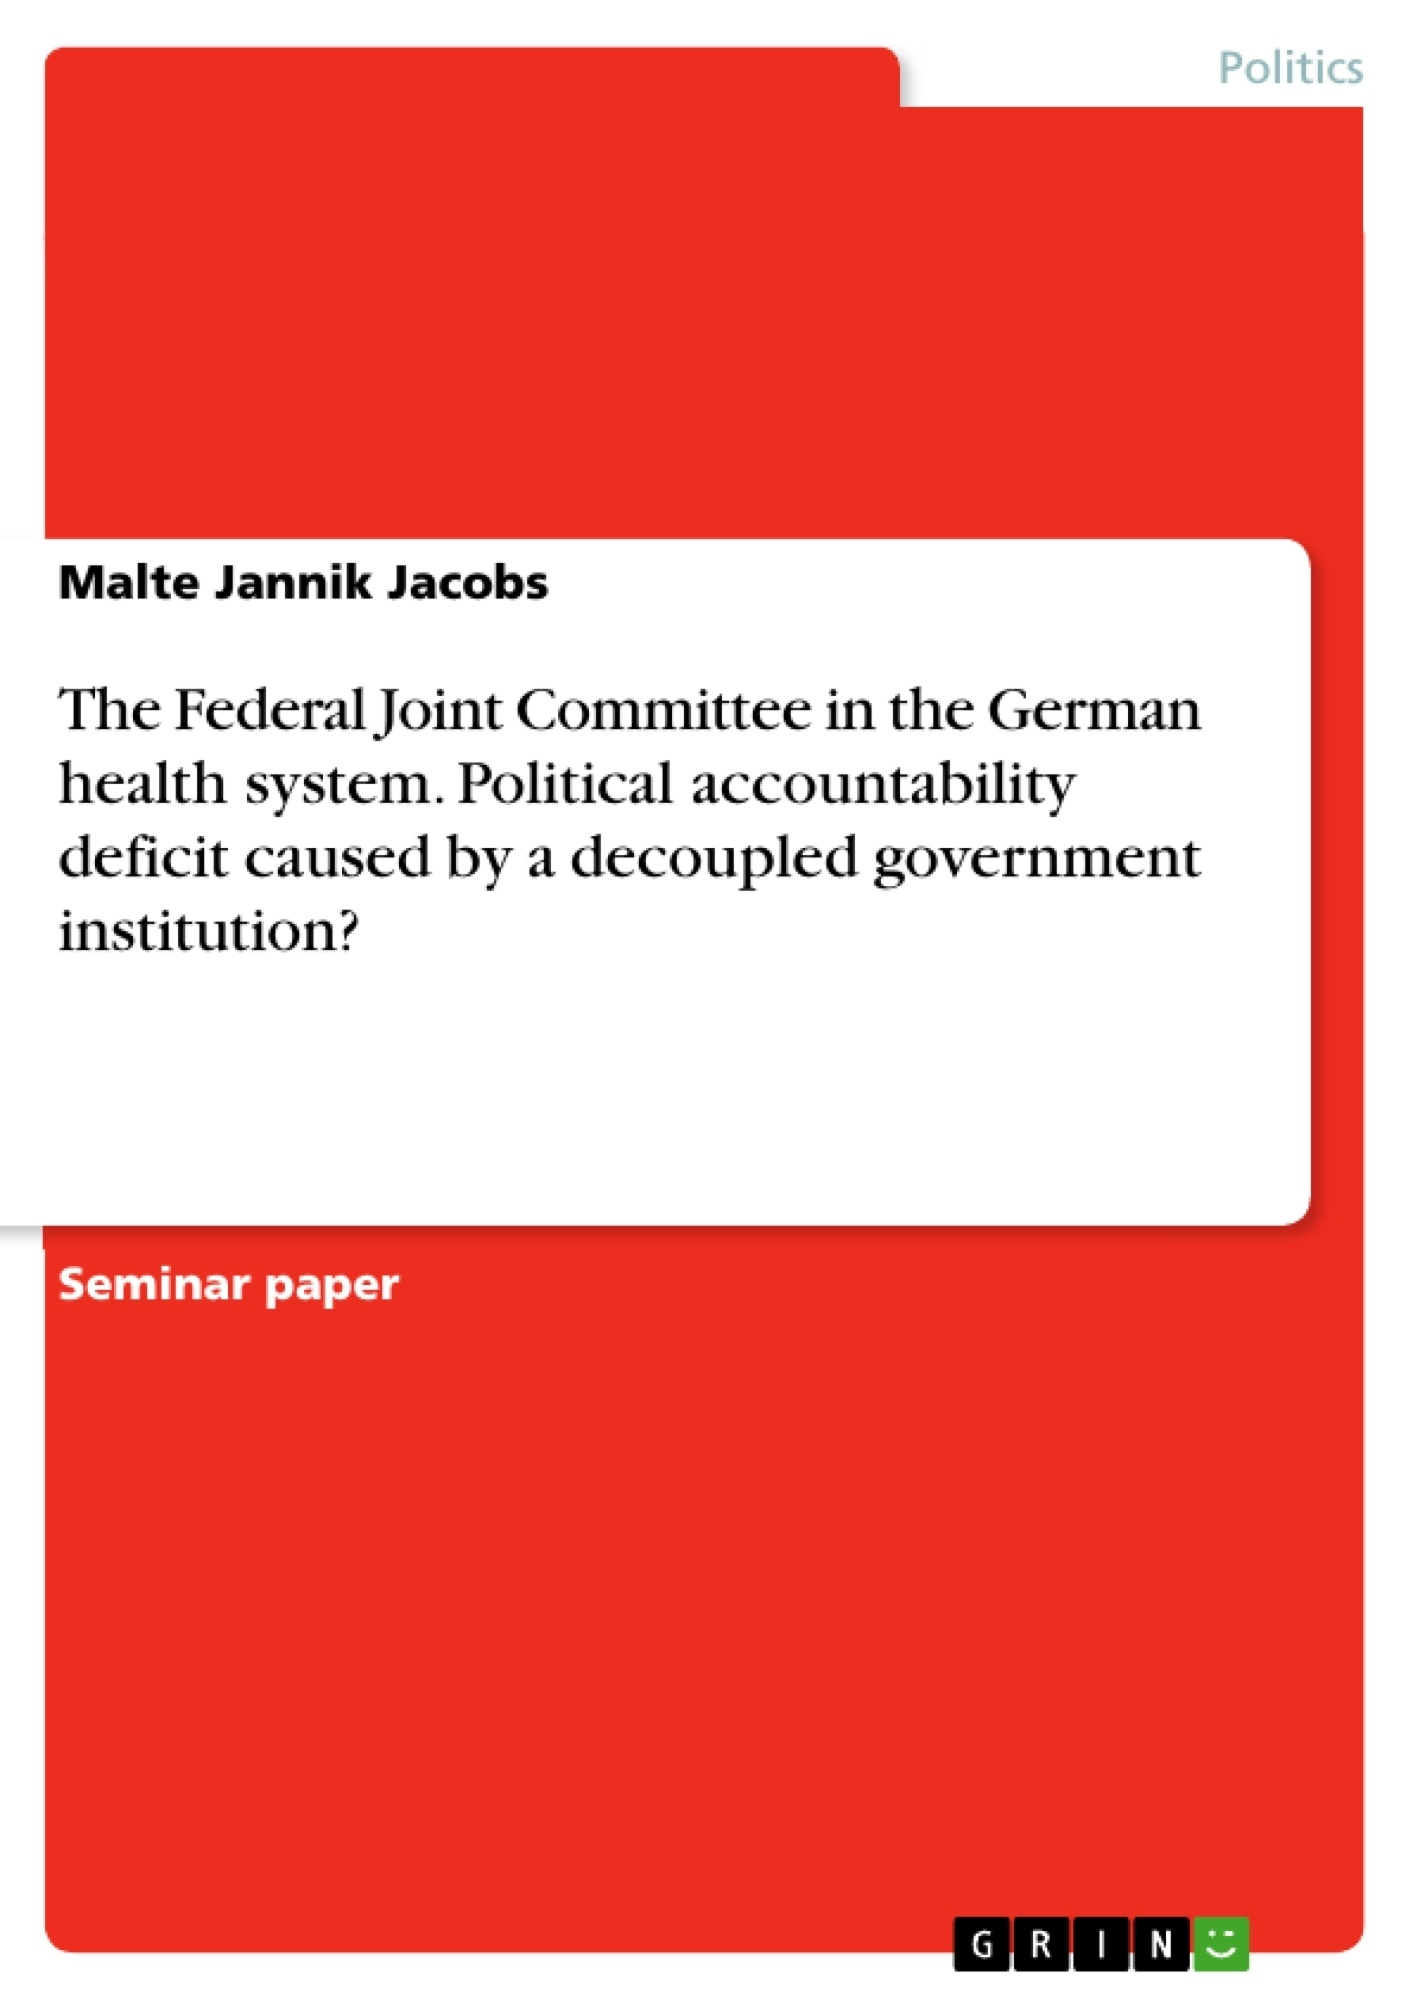 Title: The Federal Joint Committee in the German health system. Political accountability deficit caused by a decoupled government institution?